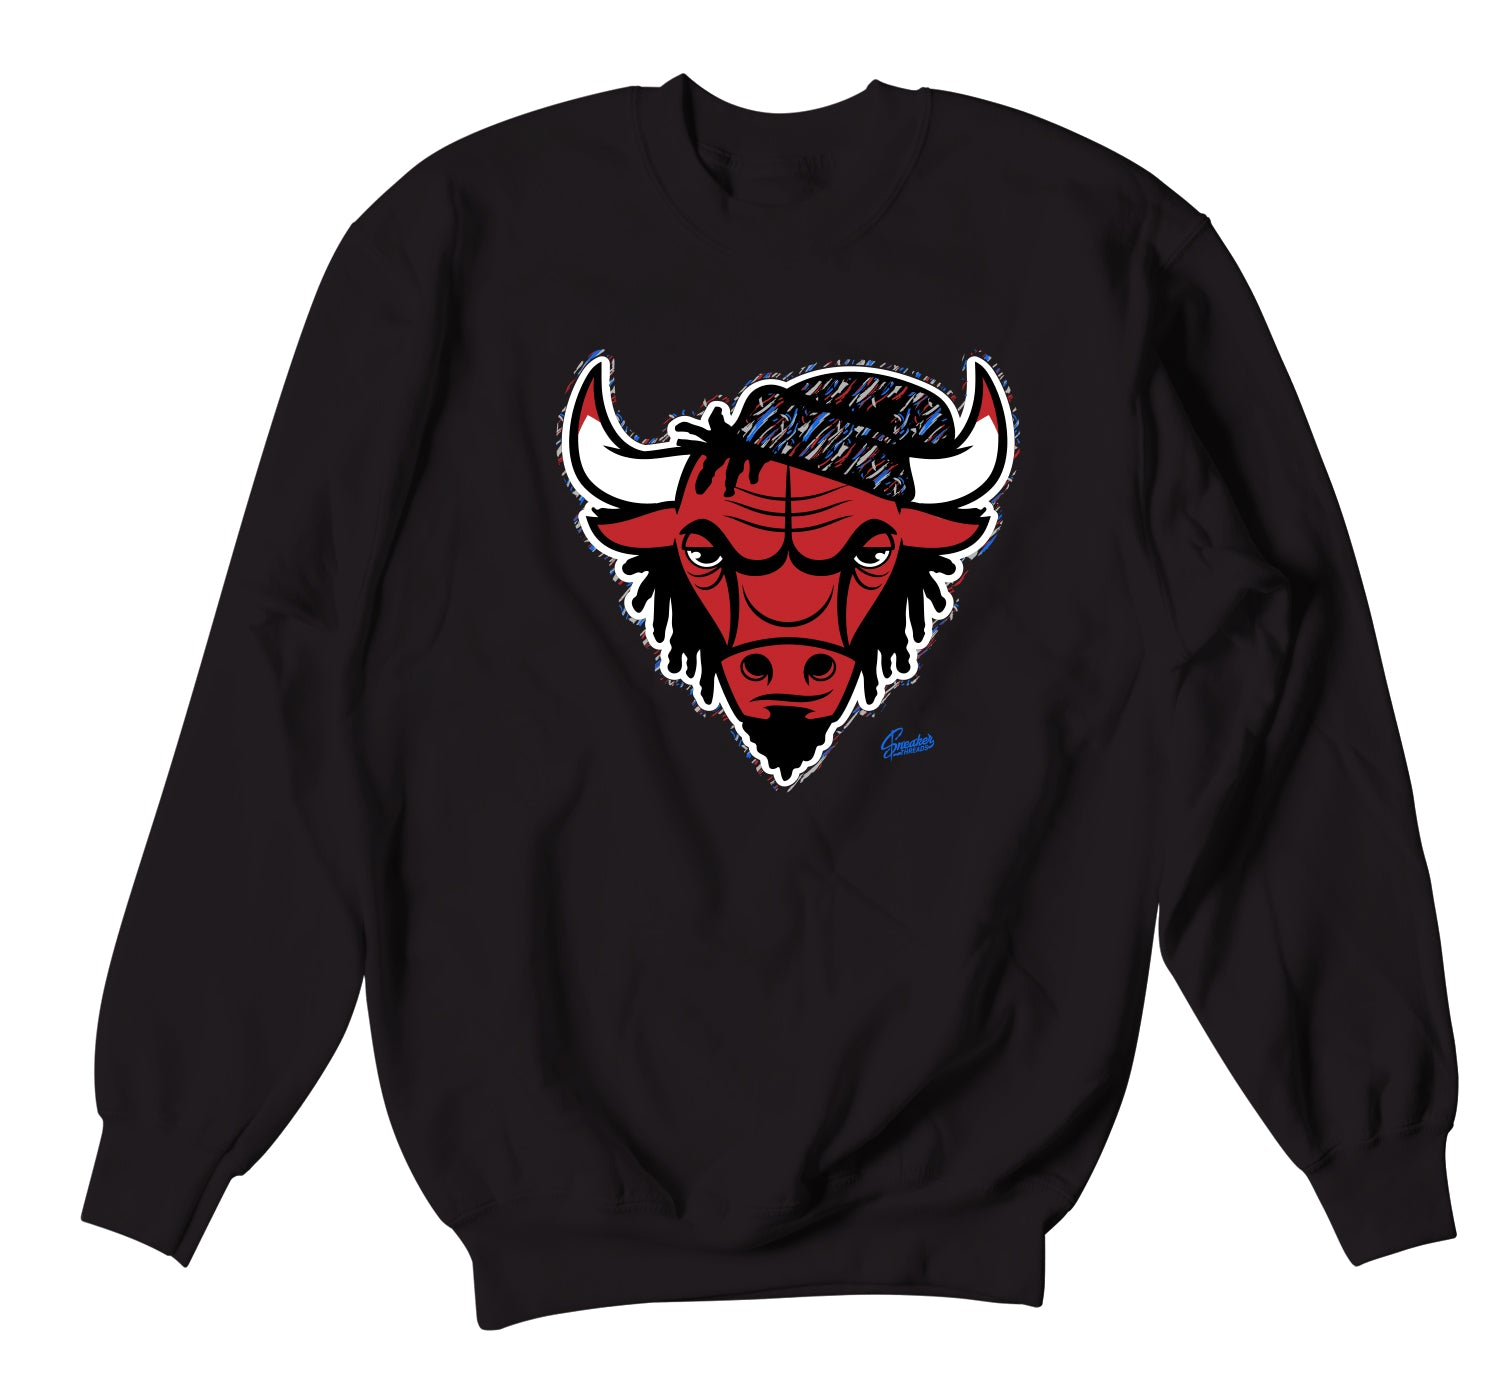 Jordan 4 What The Four Sweater - Rasta Bull - Black